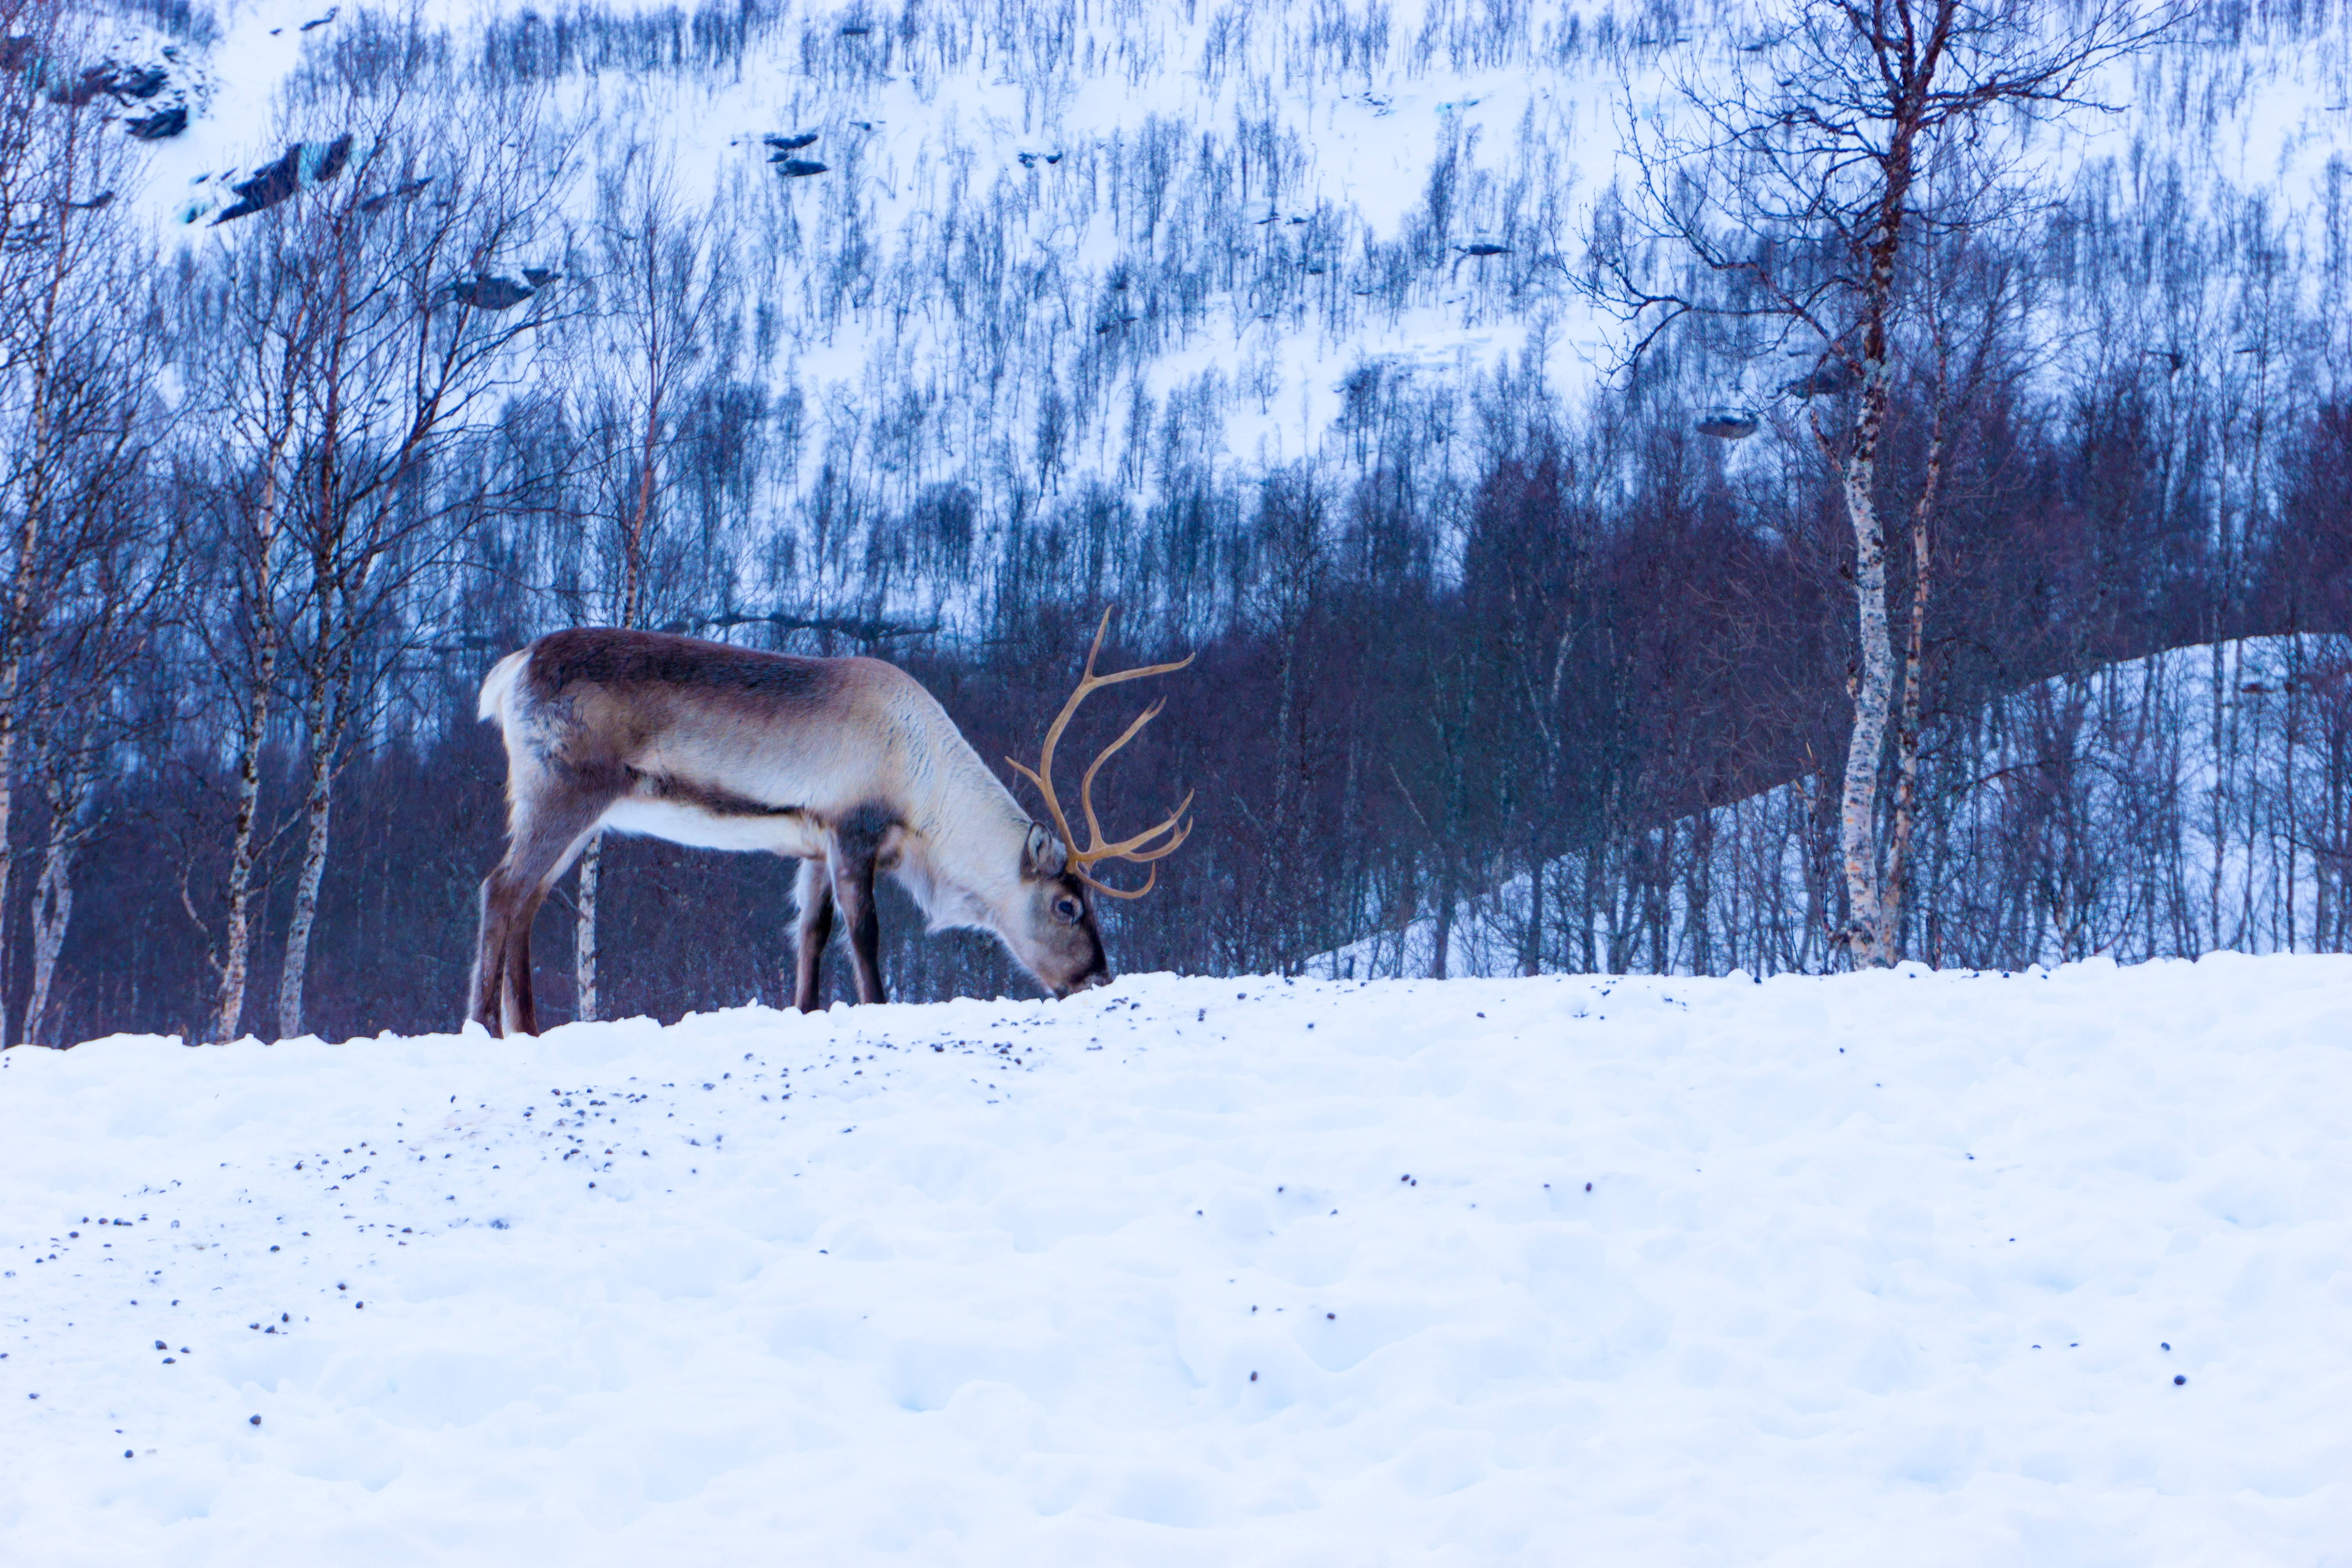 A deer with his head down in the snow at Polar Park in Norway